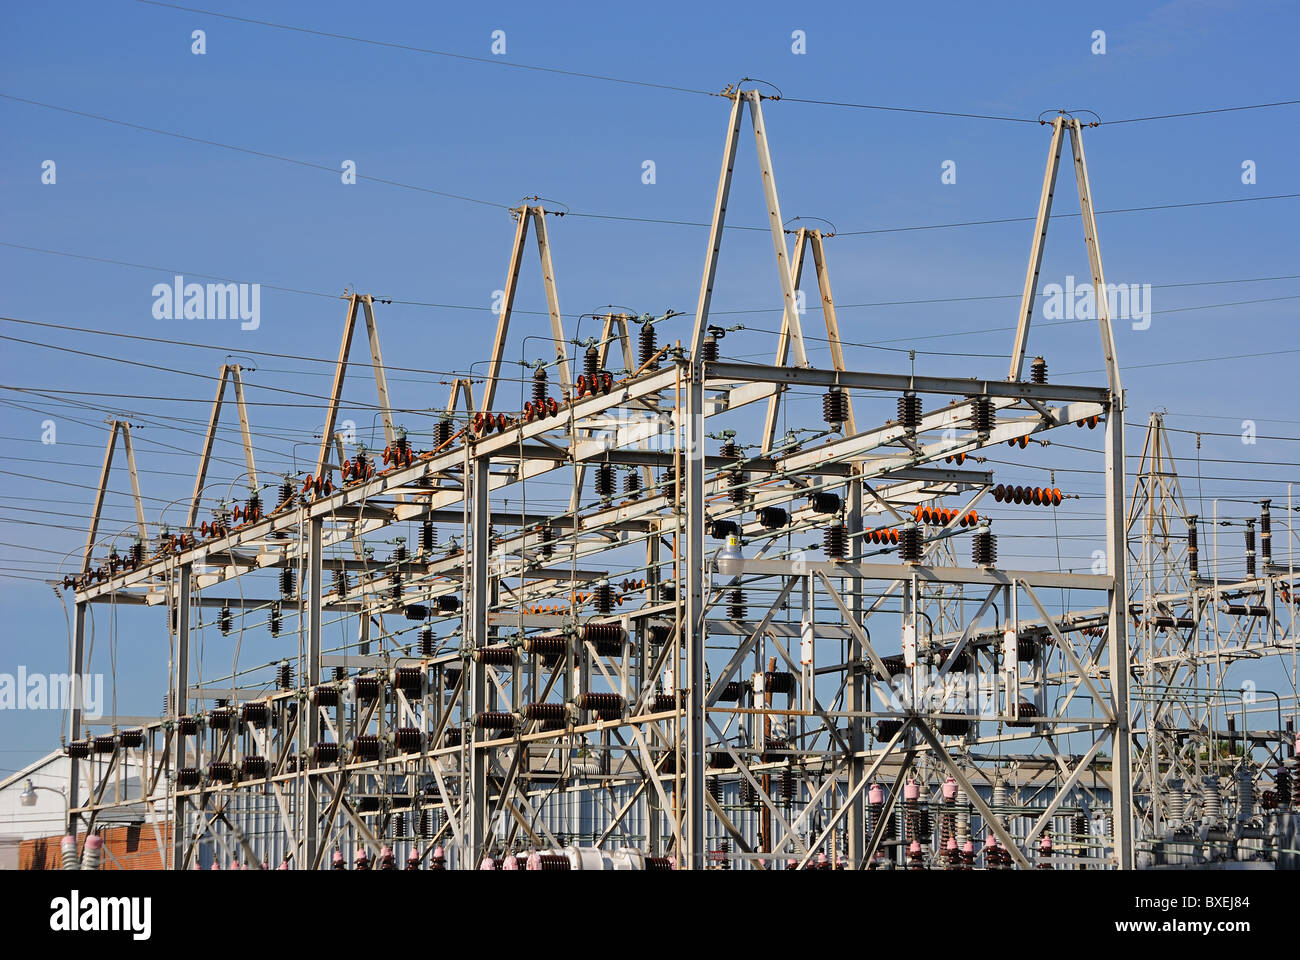 An industrial power plant - Stock Image